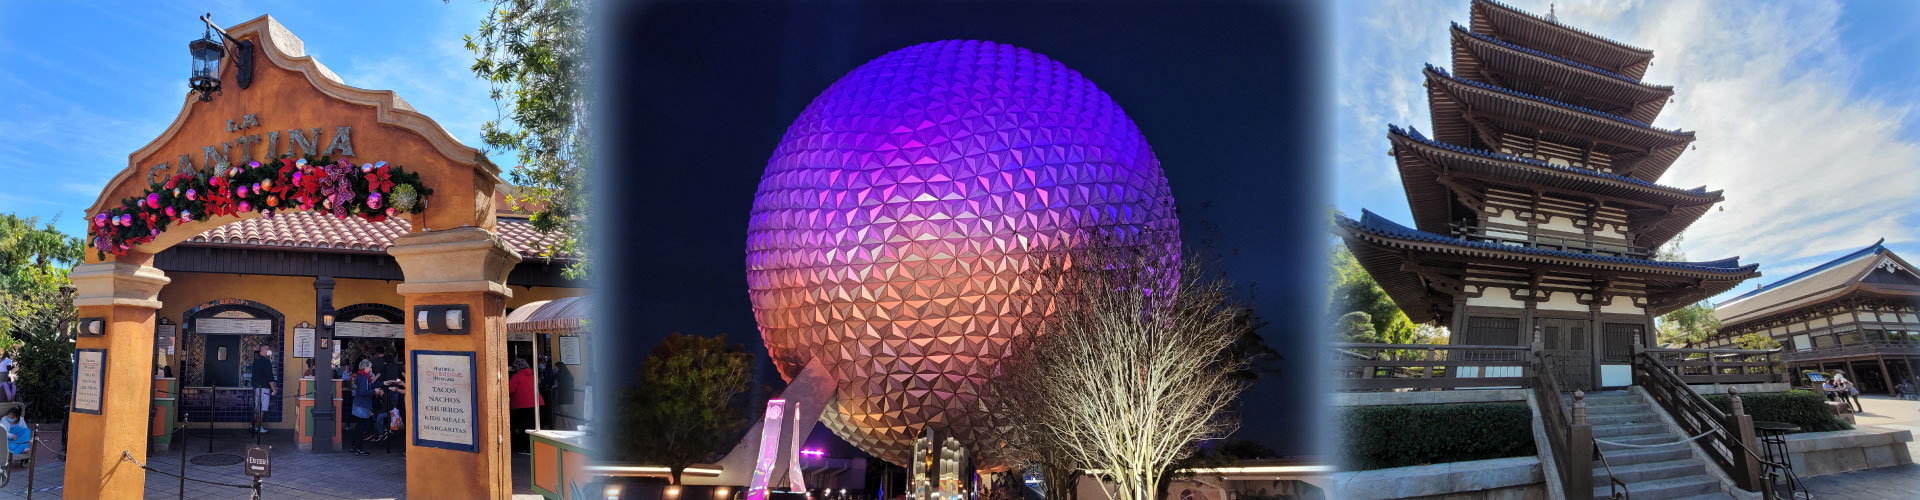 epcot_collage